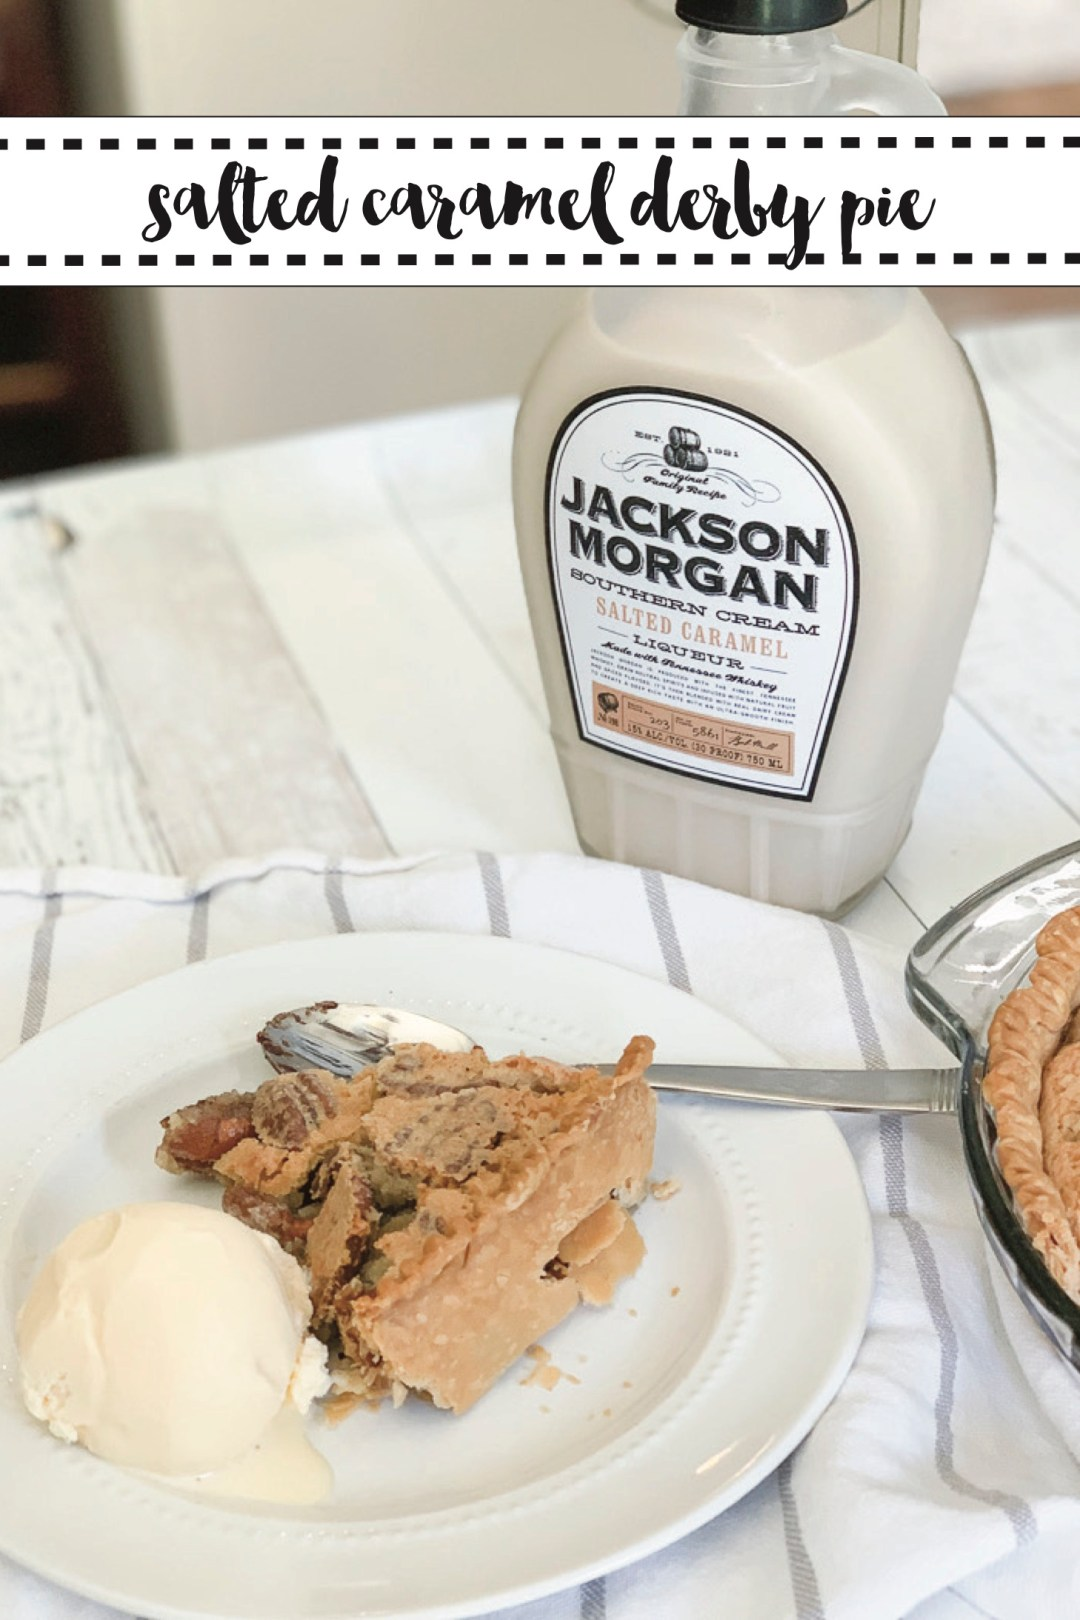 Derby Pie Ice Cream Jackson Morgan Cream